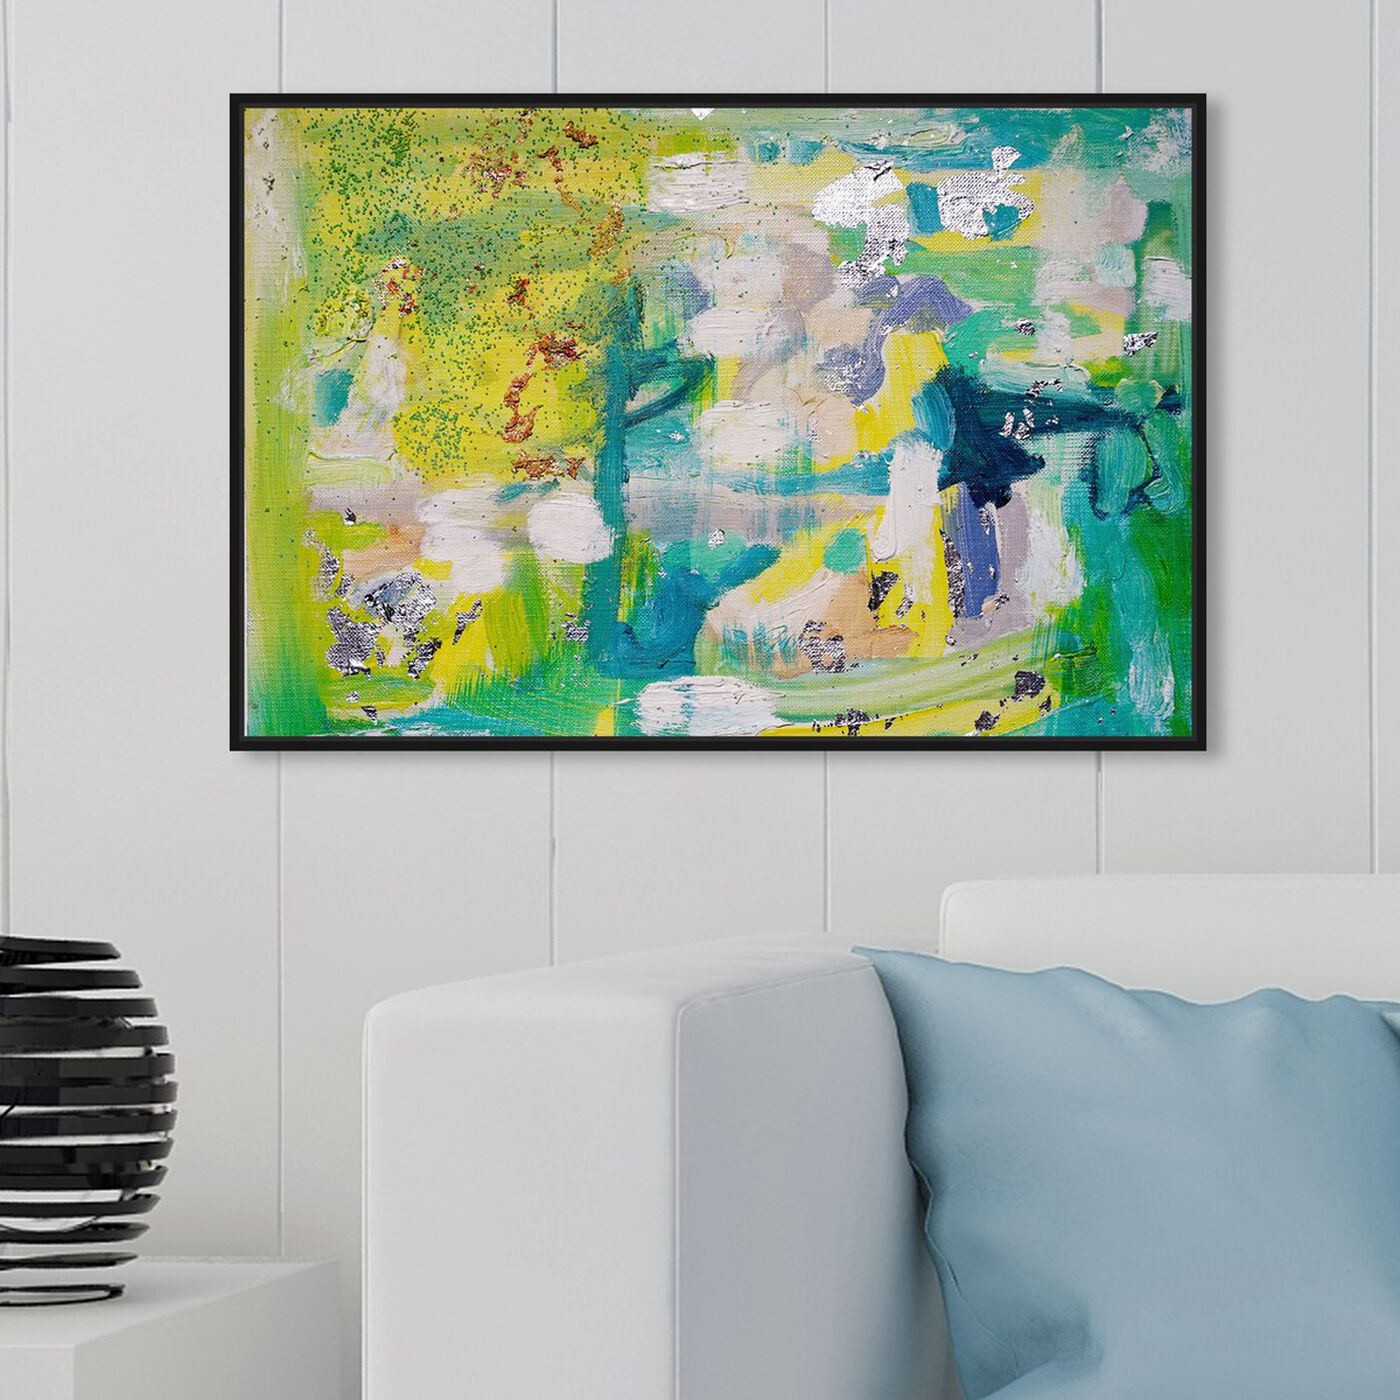 Hanging view of Fresh Awakening by Tiffany Pratt featuring abstract and paint art.